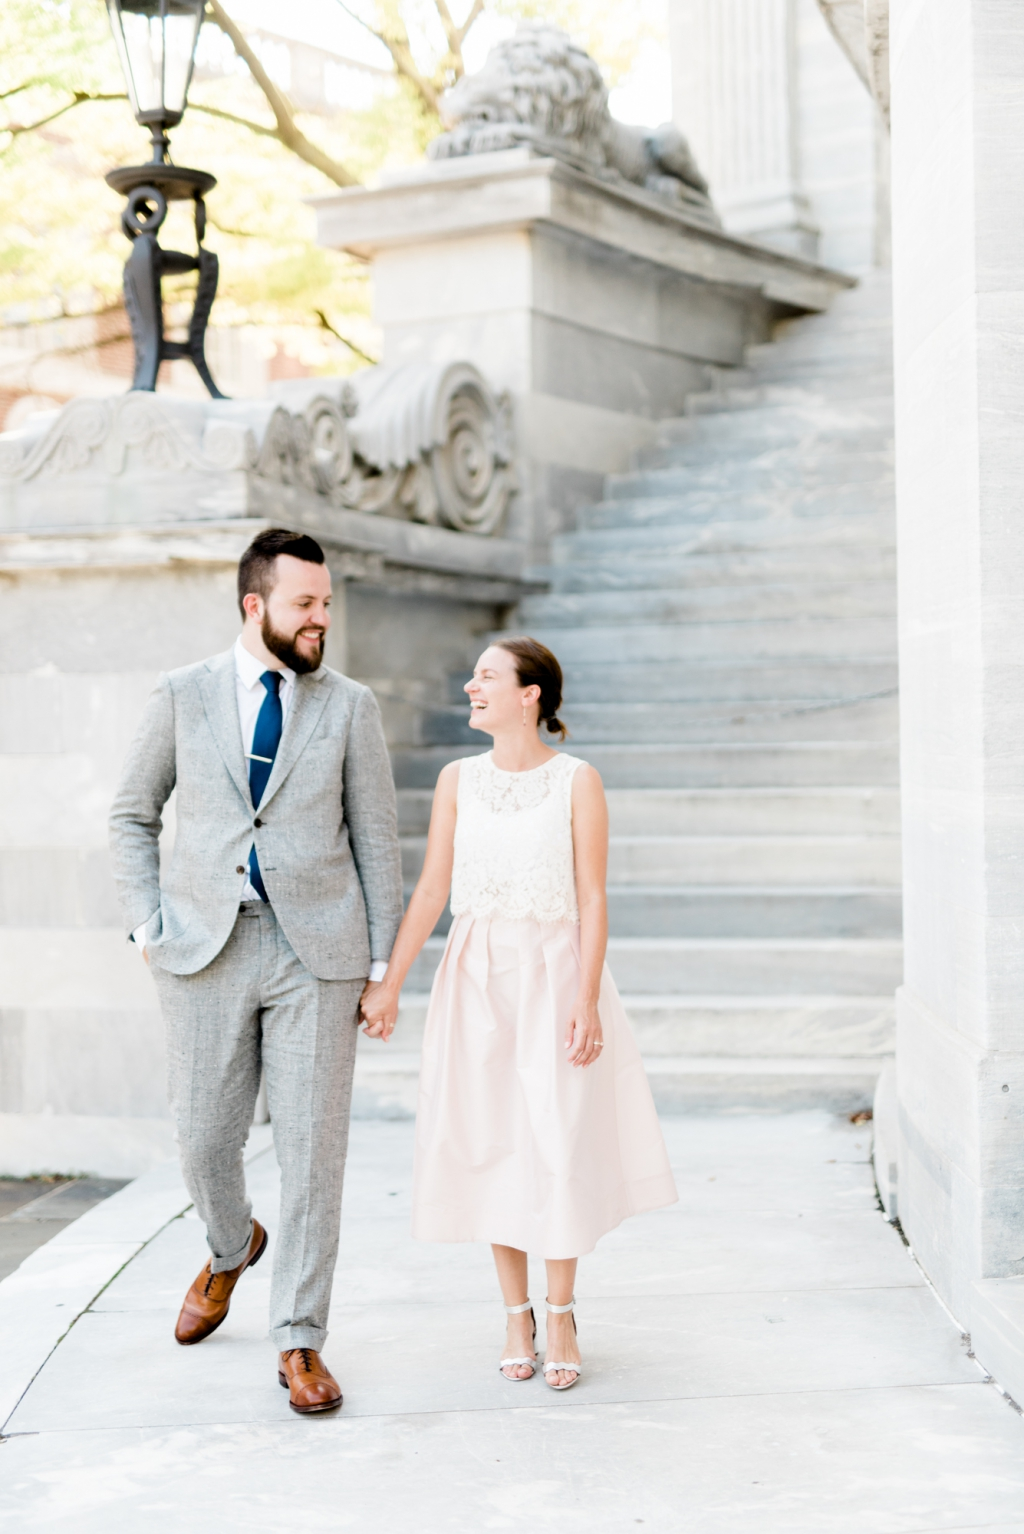 haley-richter-photography-intimate-summer-wedding-palomar-hotel-old-city-philadelphia-074